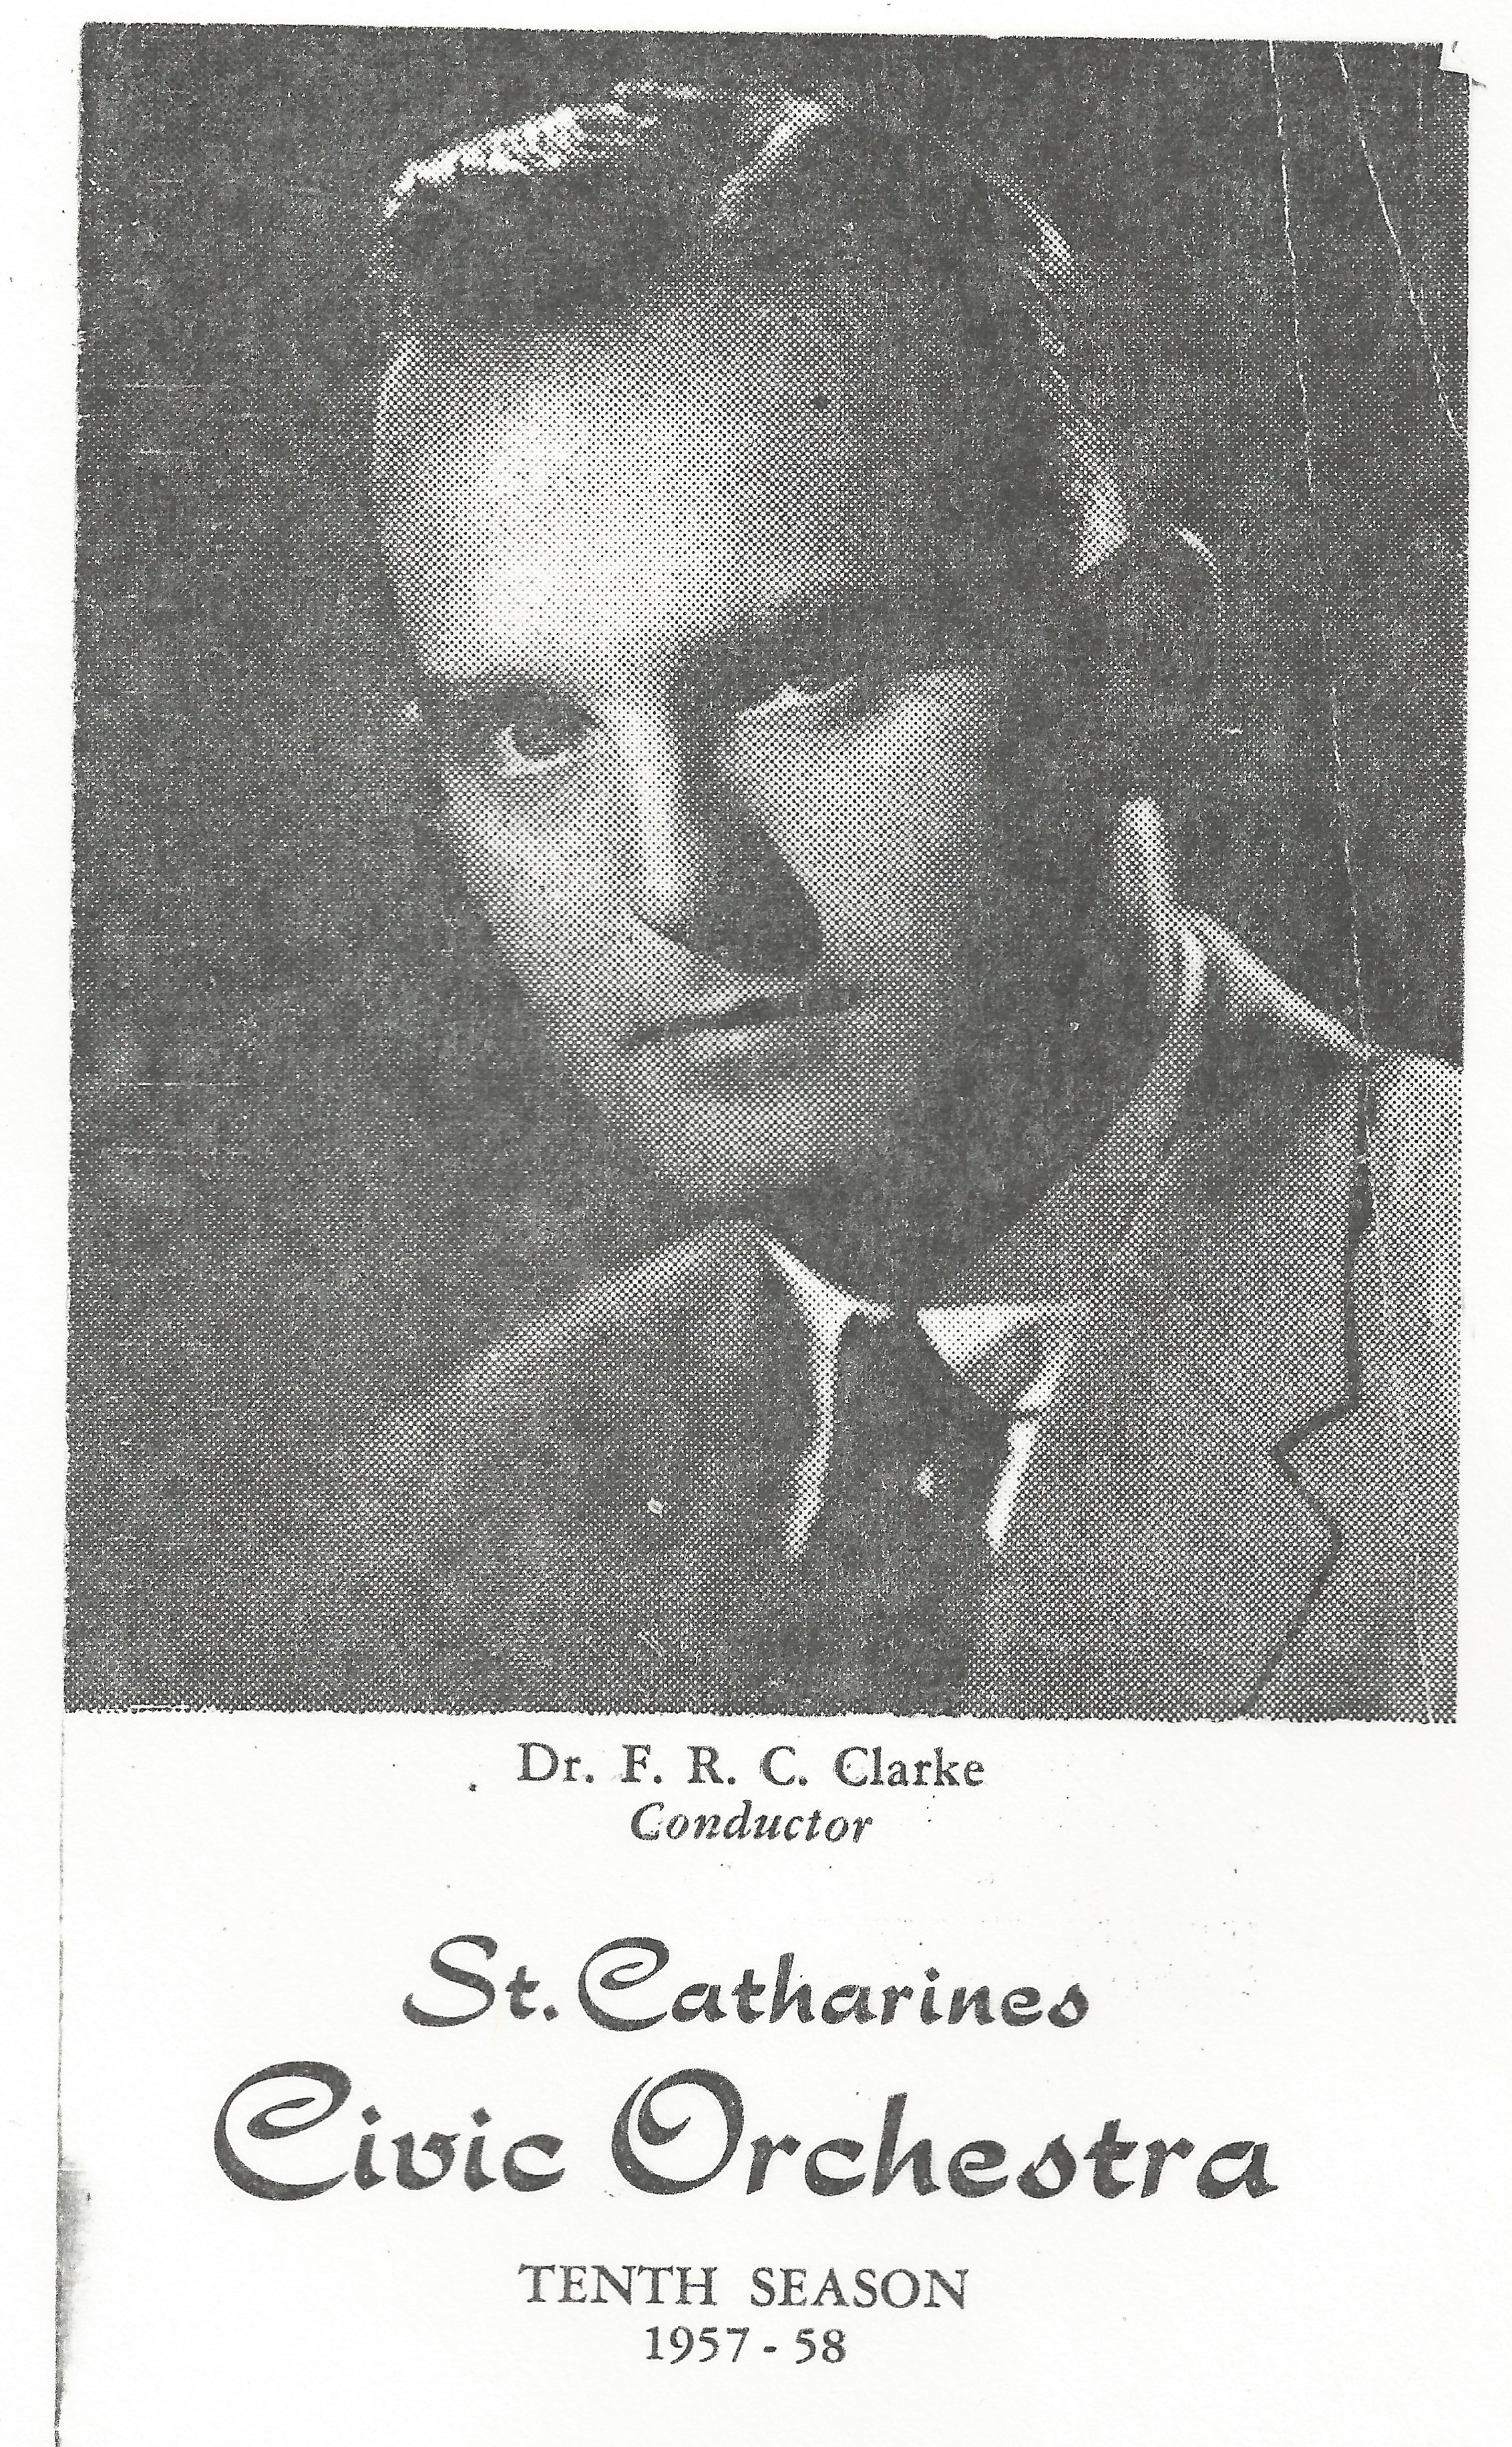 headshot of Dr. F. R. C. Clarke